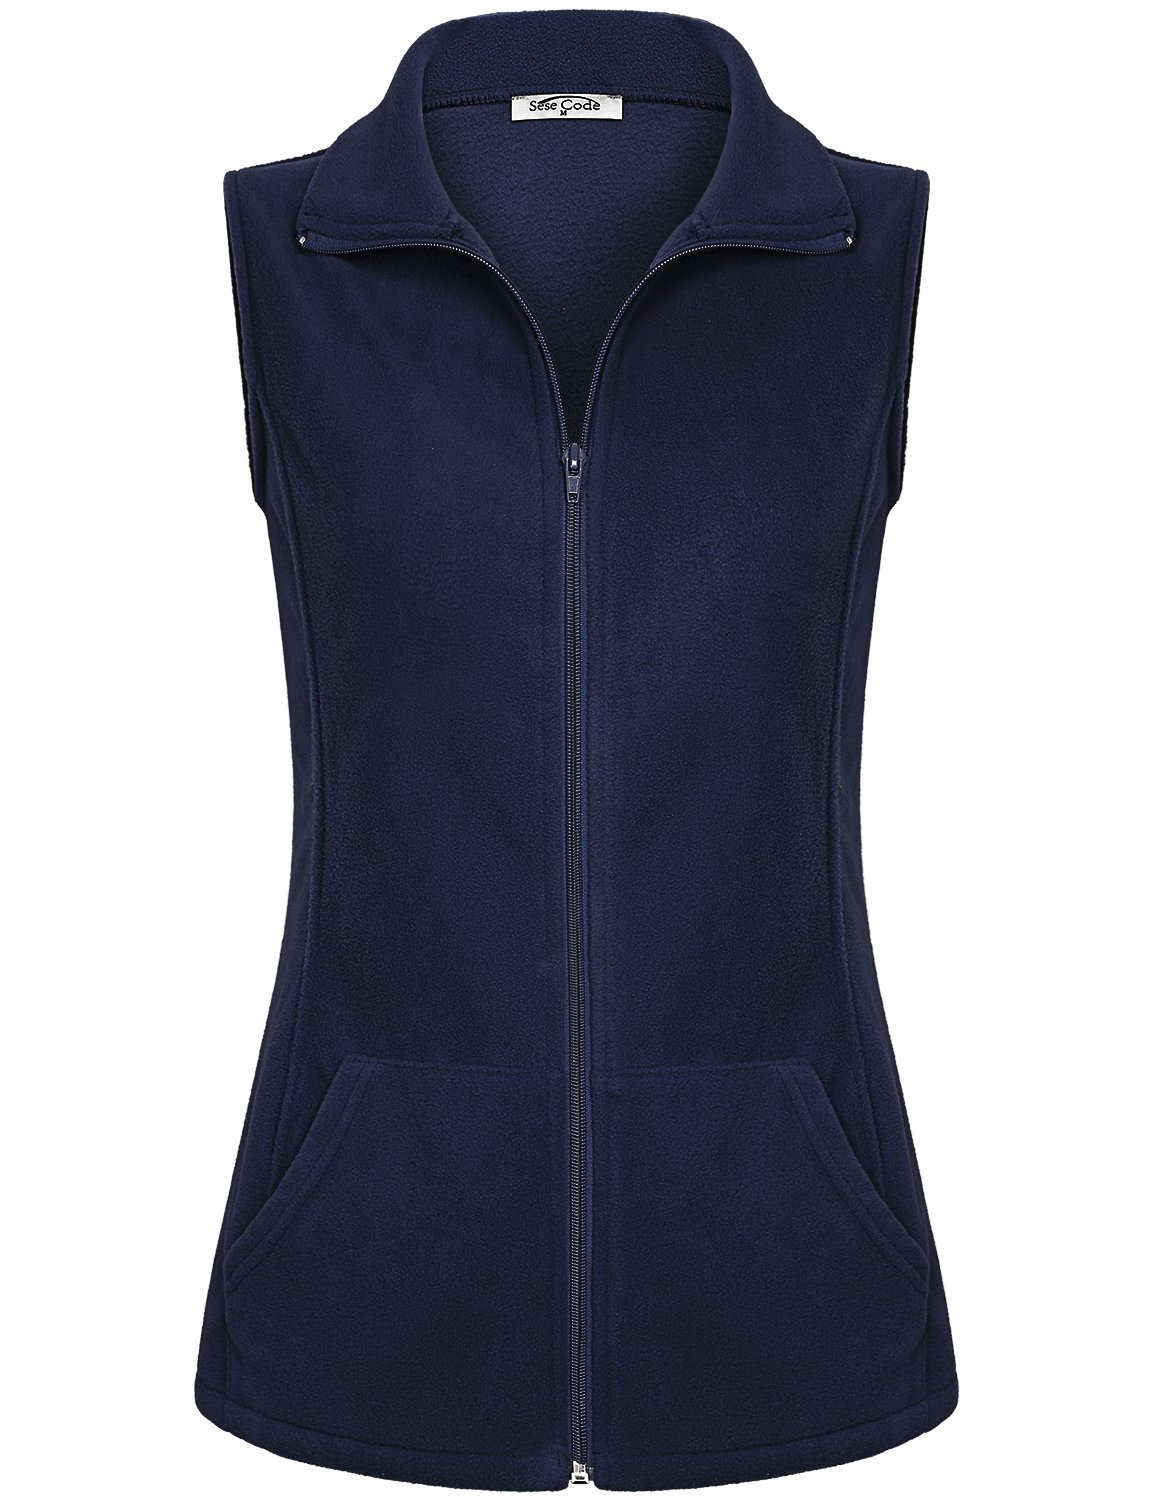 SeSe Code Lightweight Vests Womens Ladies Fashion Slimming Work Spring Sport Business Casual Wear Boutique Loose Fitted Polar Fleece Vest Navy Blue L